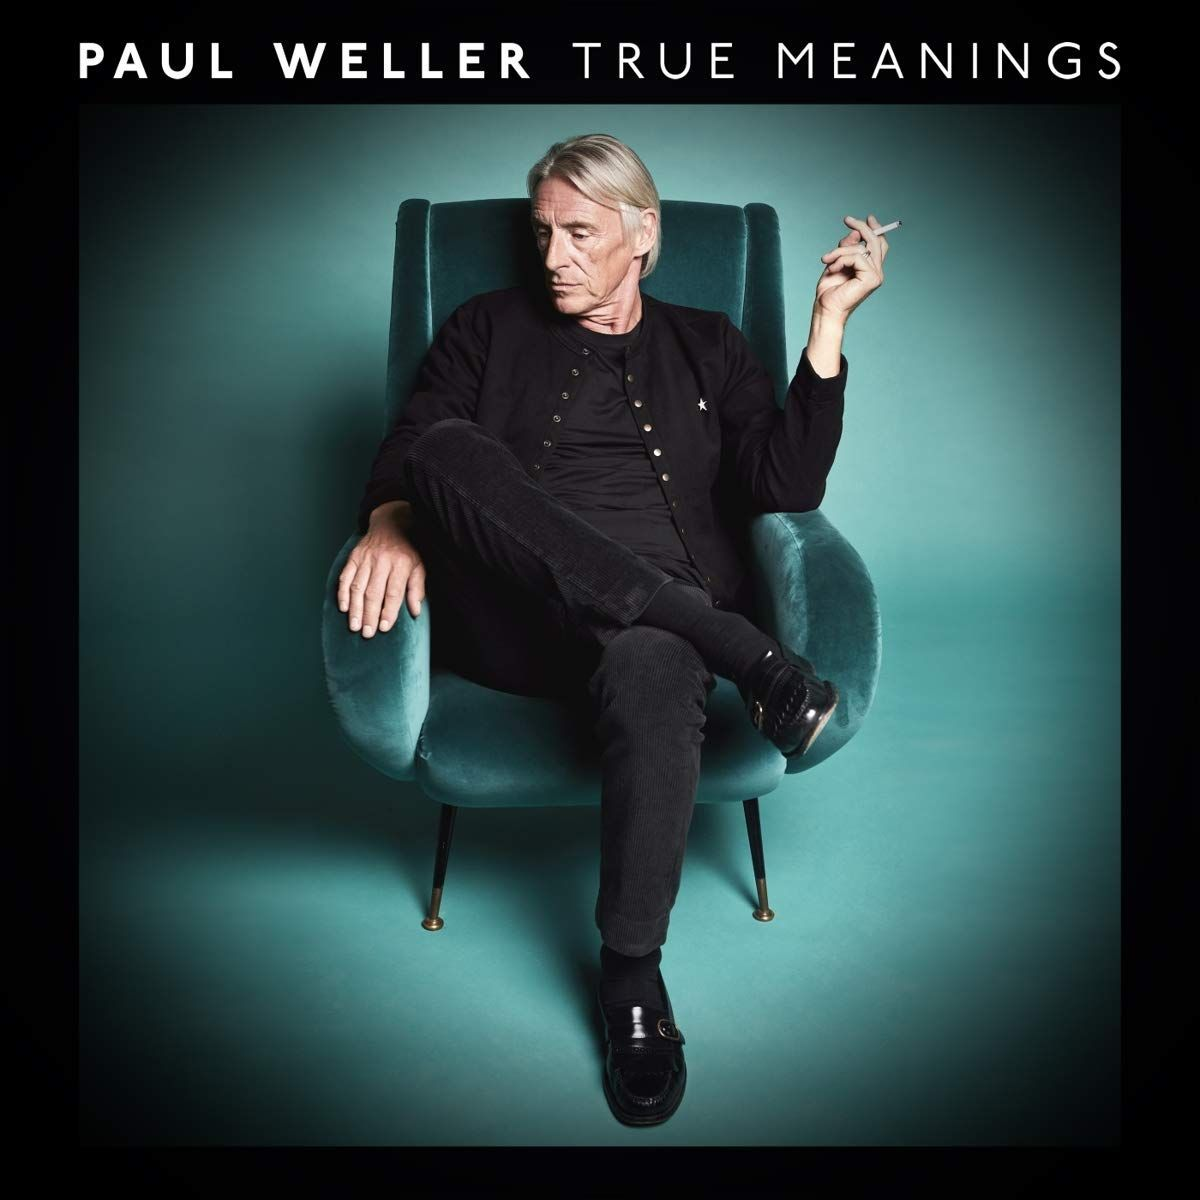 Paul Weller - True Meanings album cover